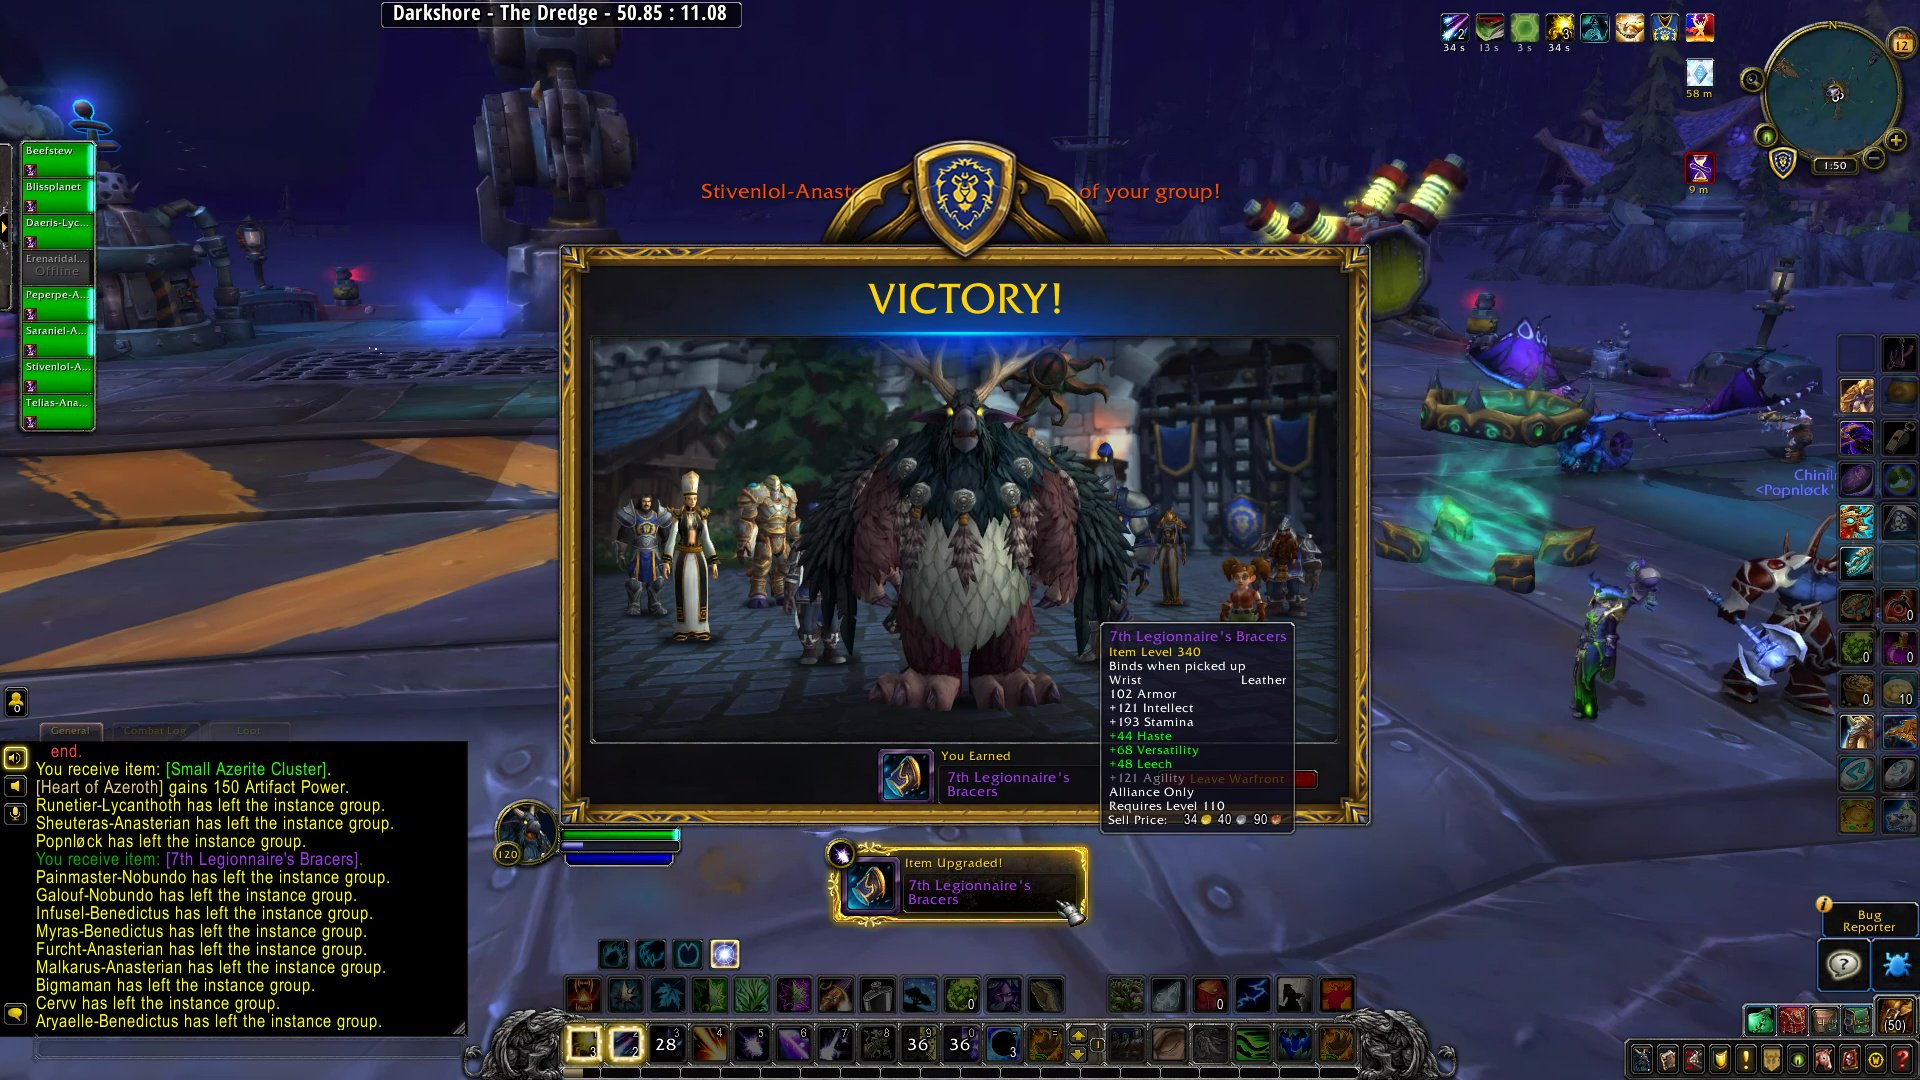 Blizzplanet Twitter My Third Run I Just Finished Play With The Blues Warfront Darkshore It Took 34 Minutes To Beat Sira Moonwarden And Her Troops